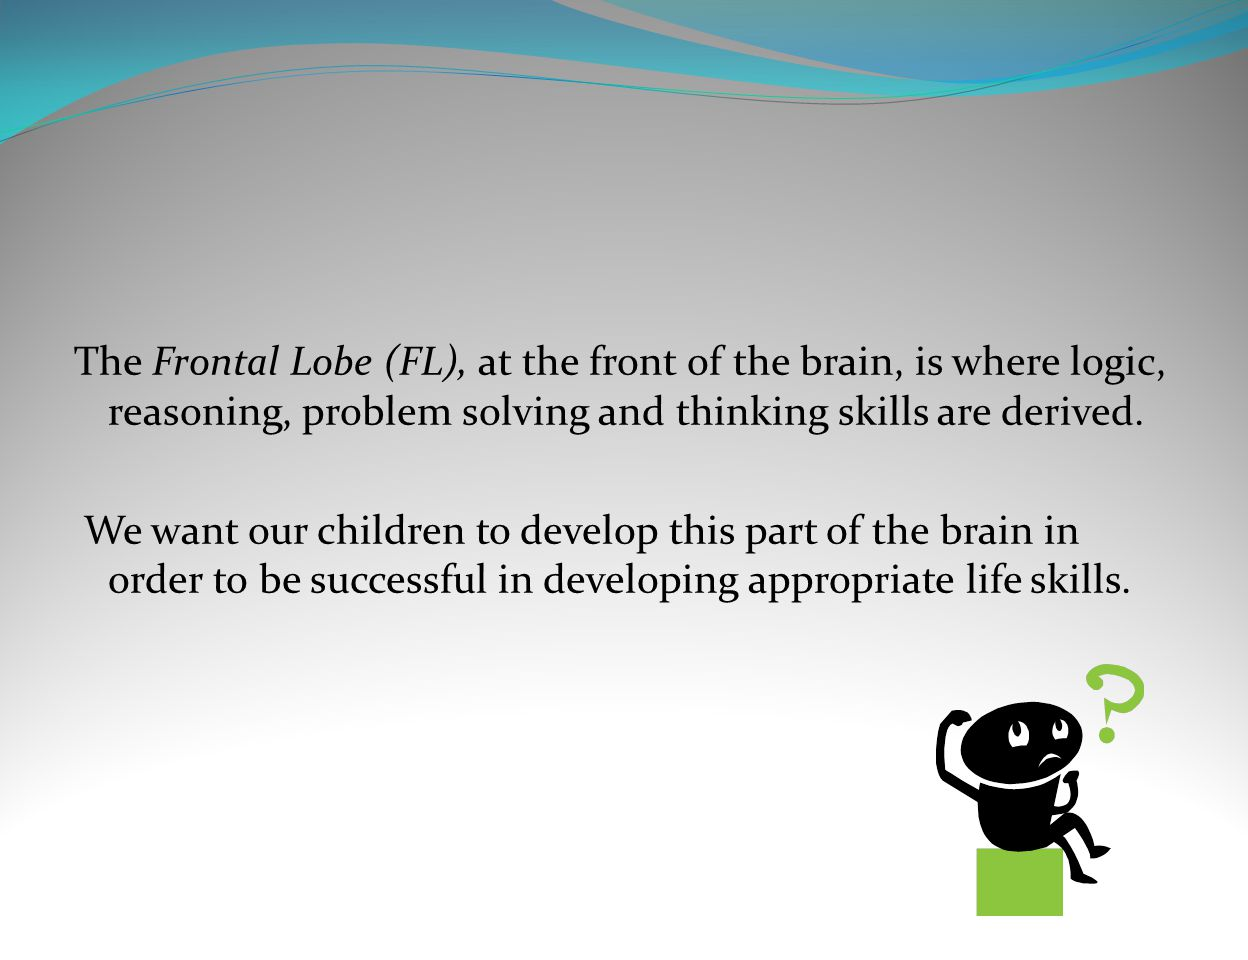 The Frontal Lobe (FL), at the front of the brain, is where logic, reasoning, problem solving and thinking skills are derived. We want our children to